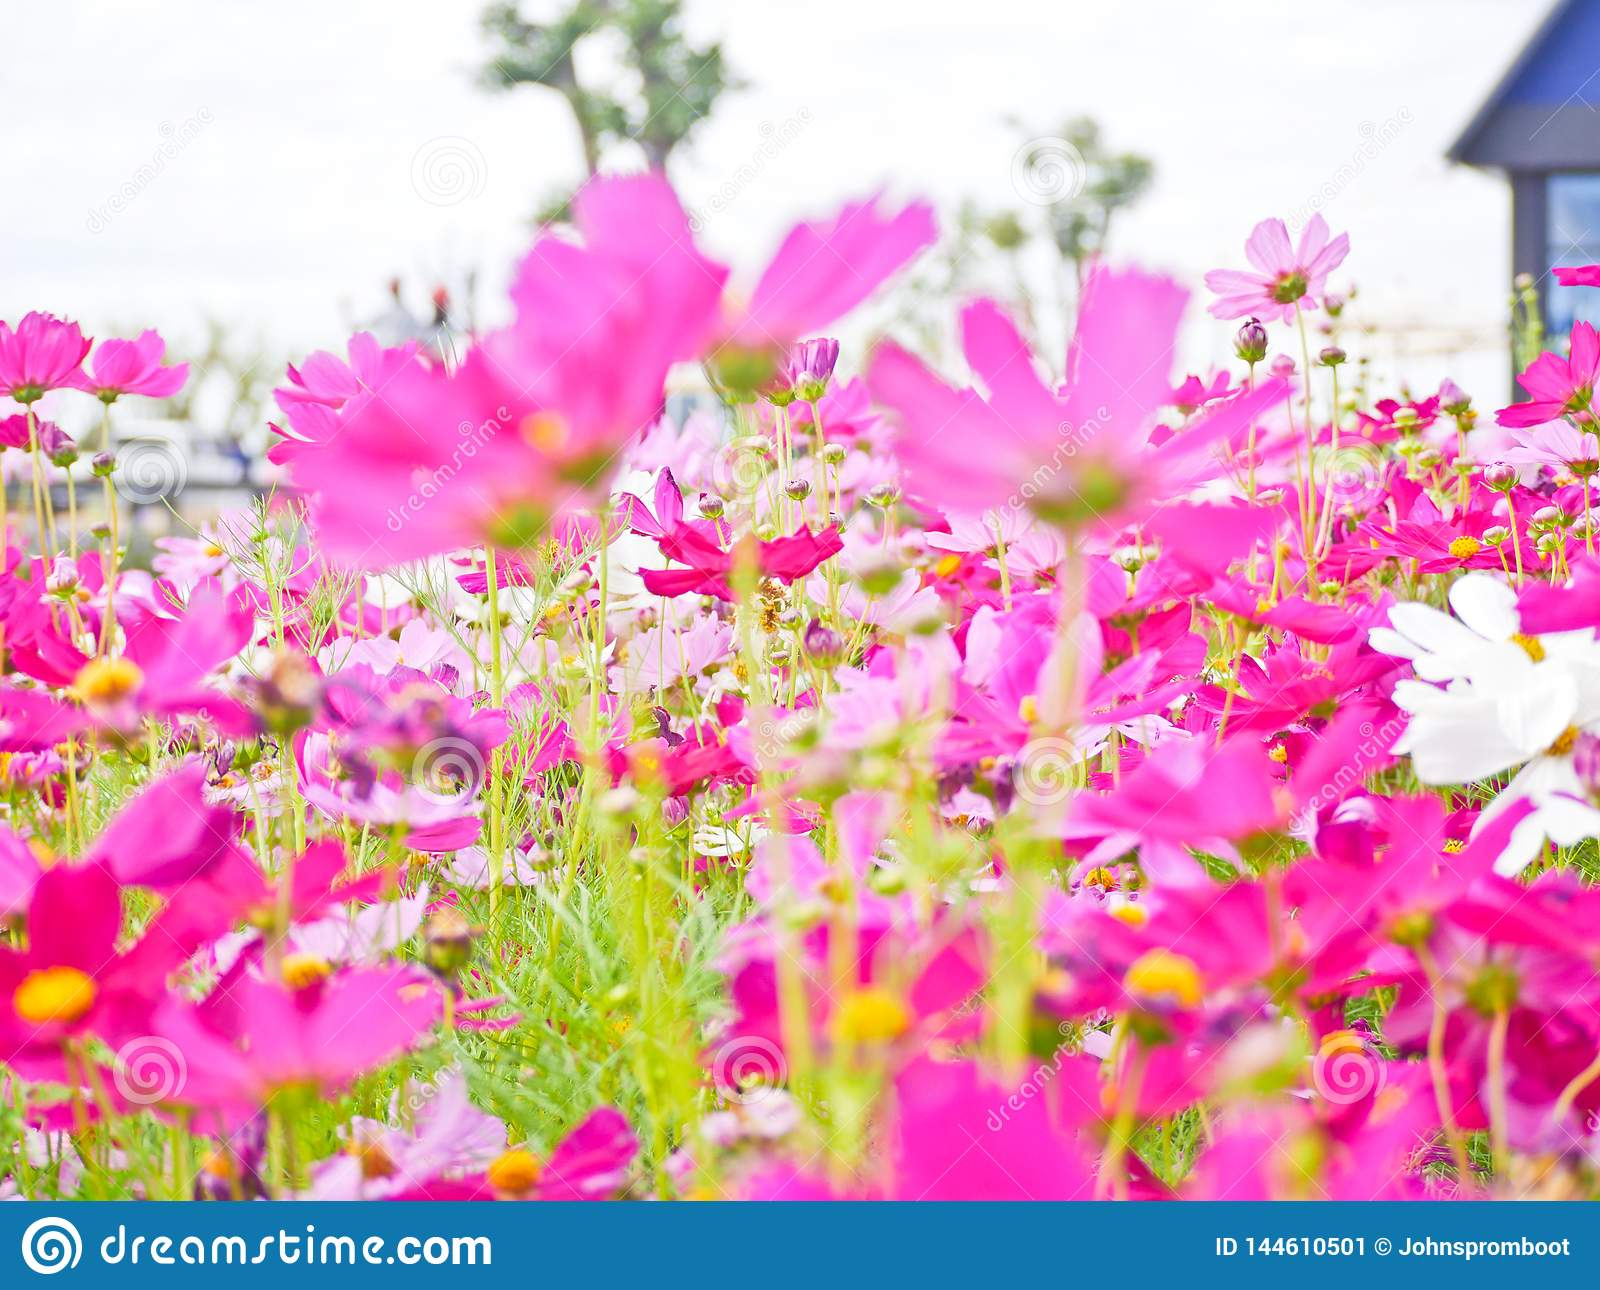 Cosmos flower field the place tourist love to visit.